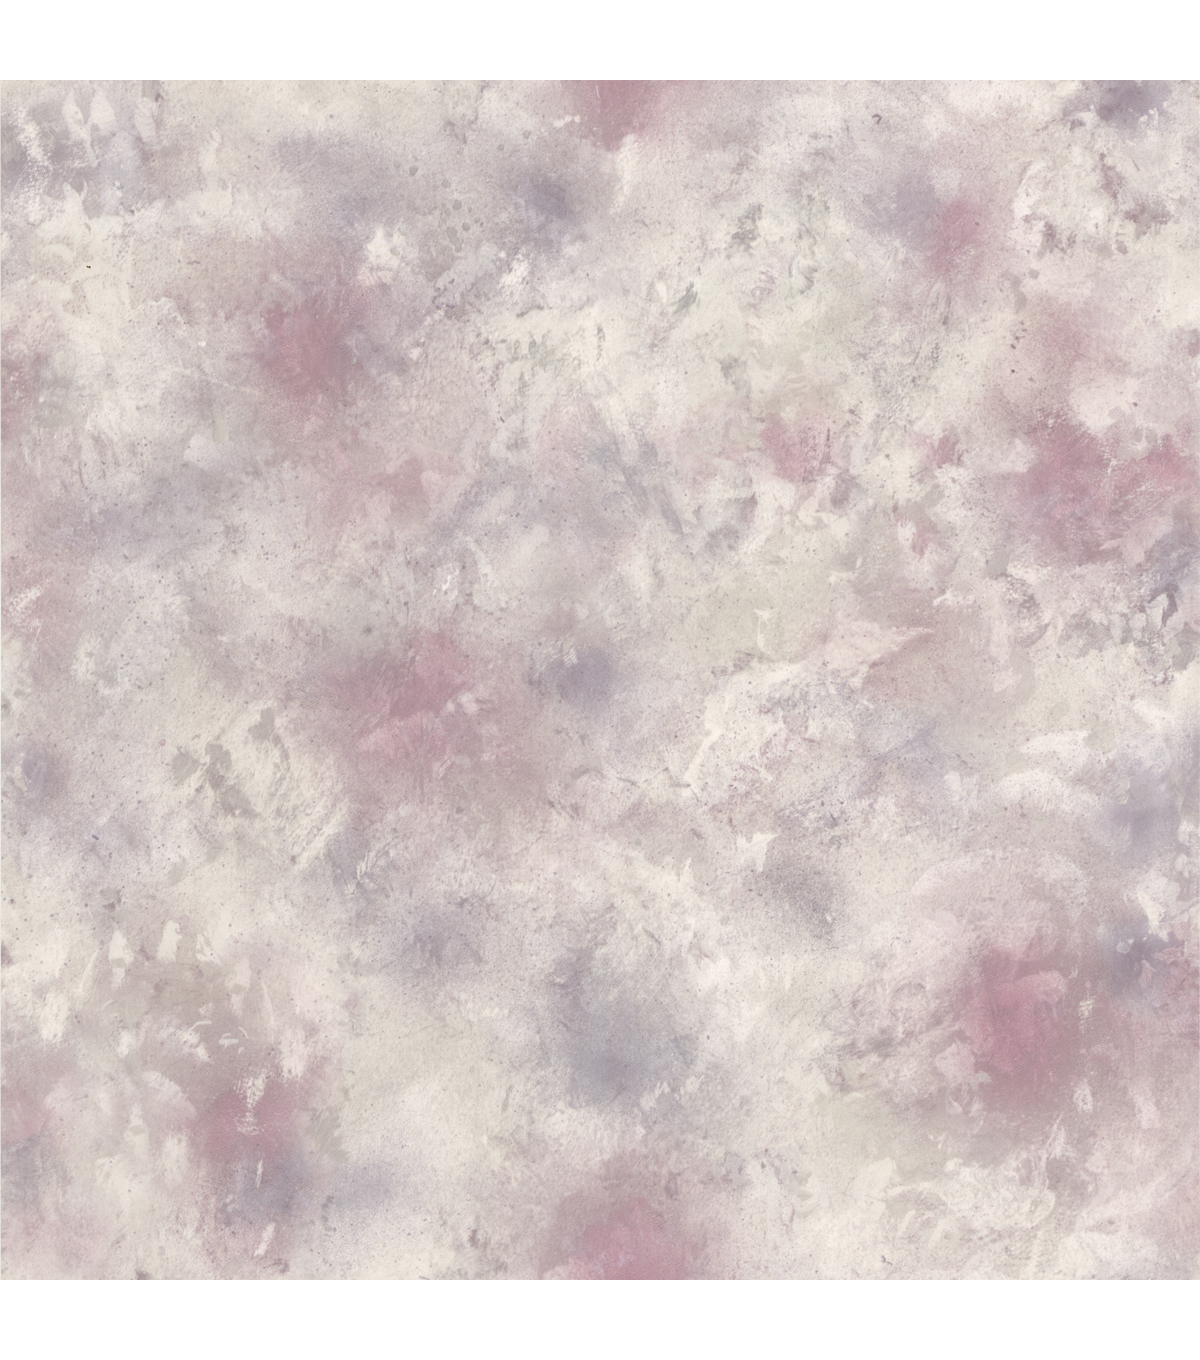 Ezra Purple Satin Marble Wallpaper